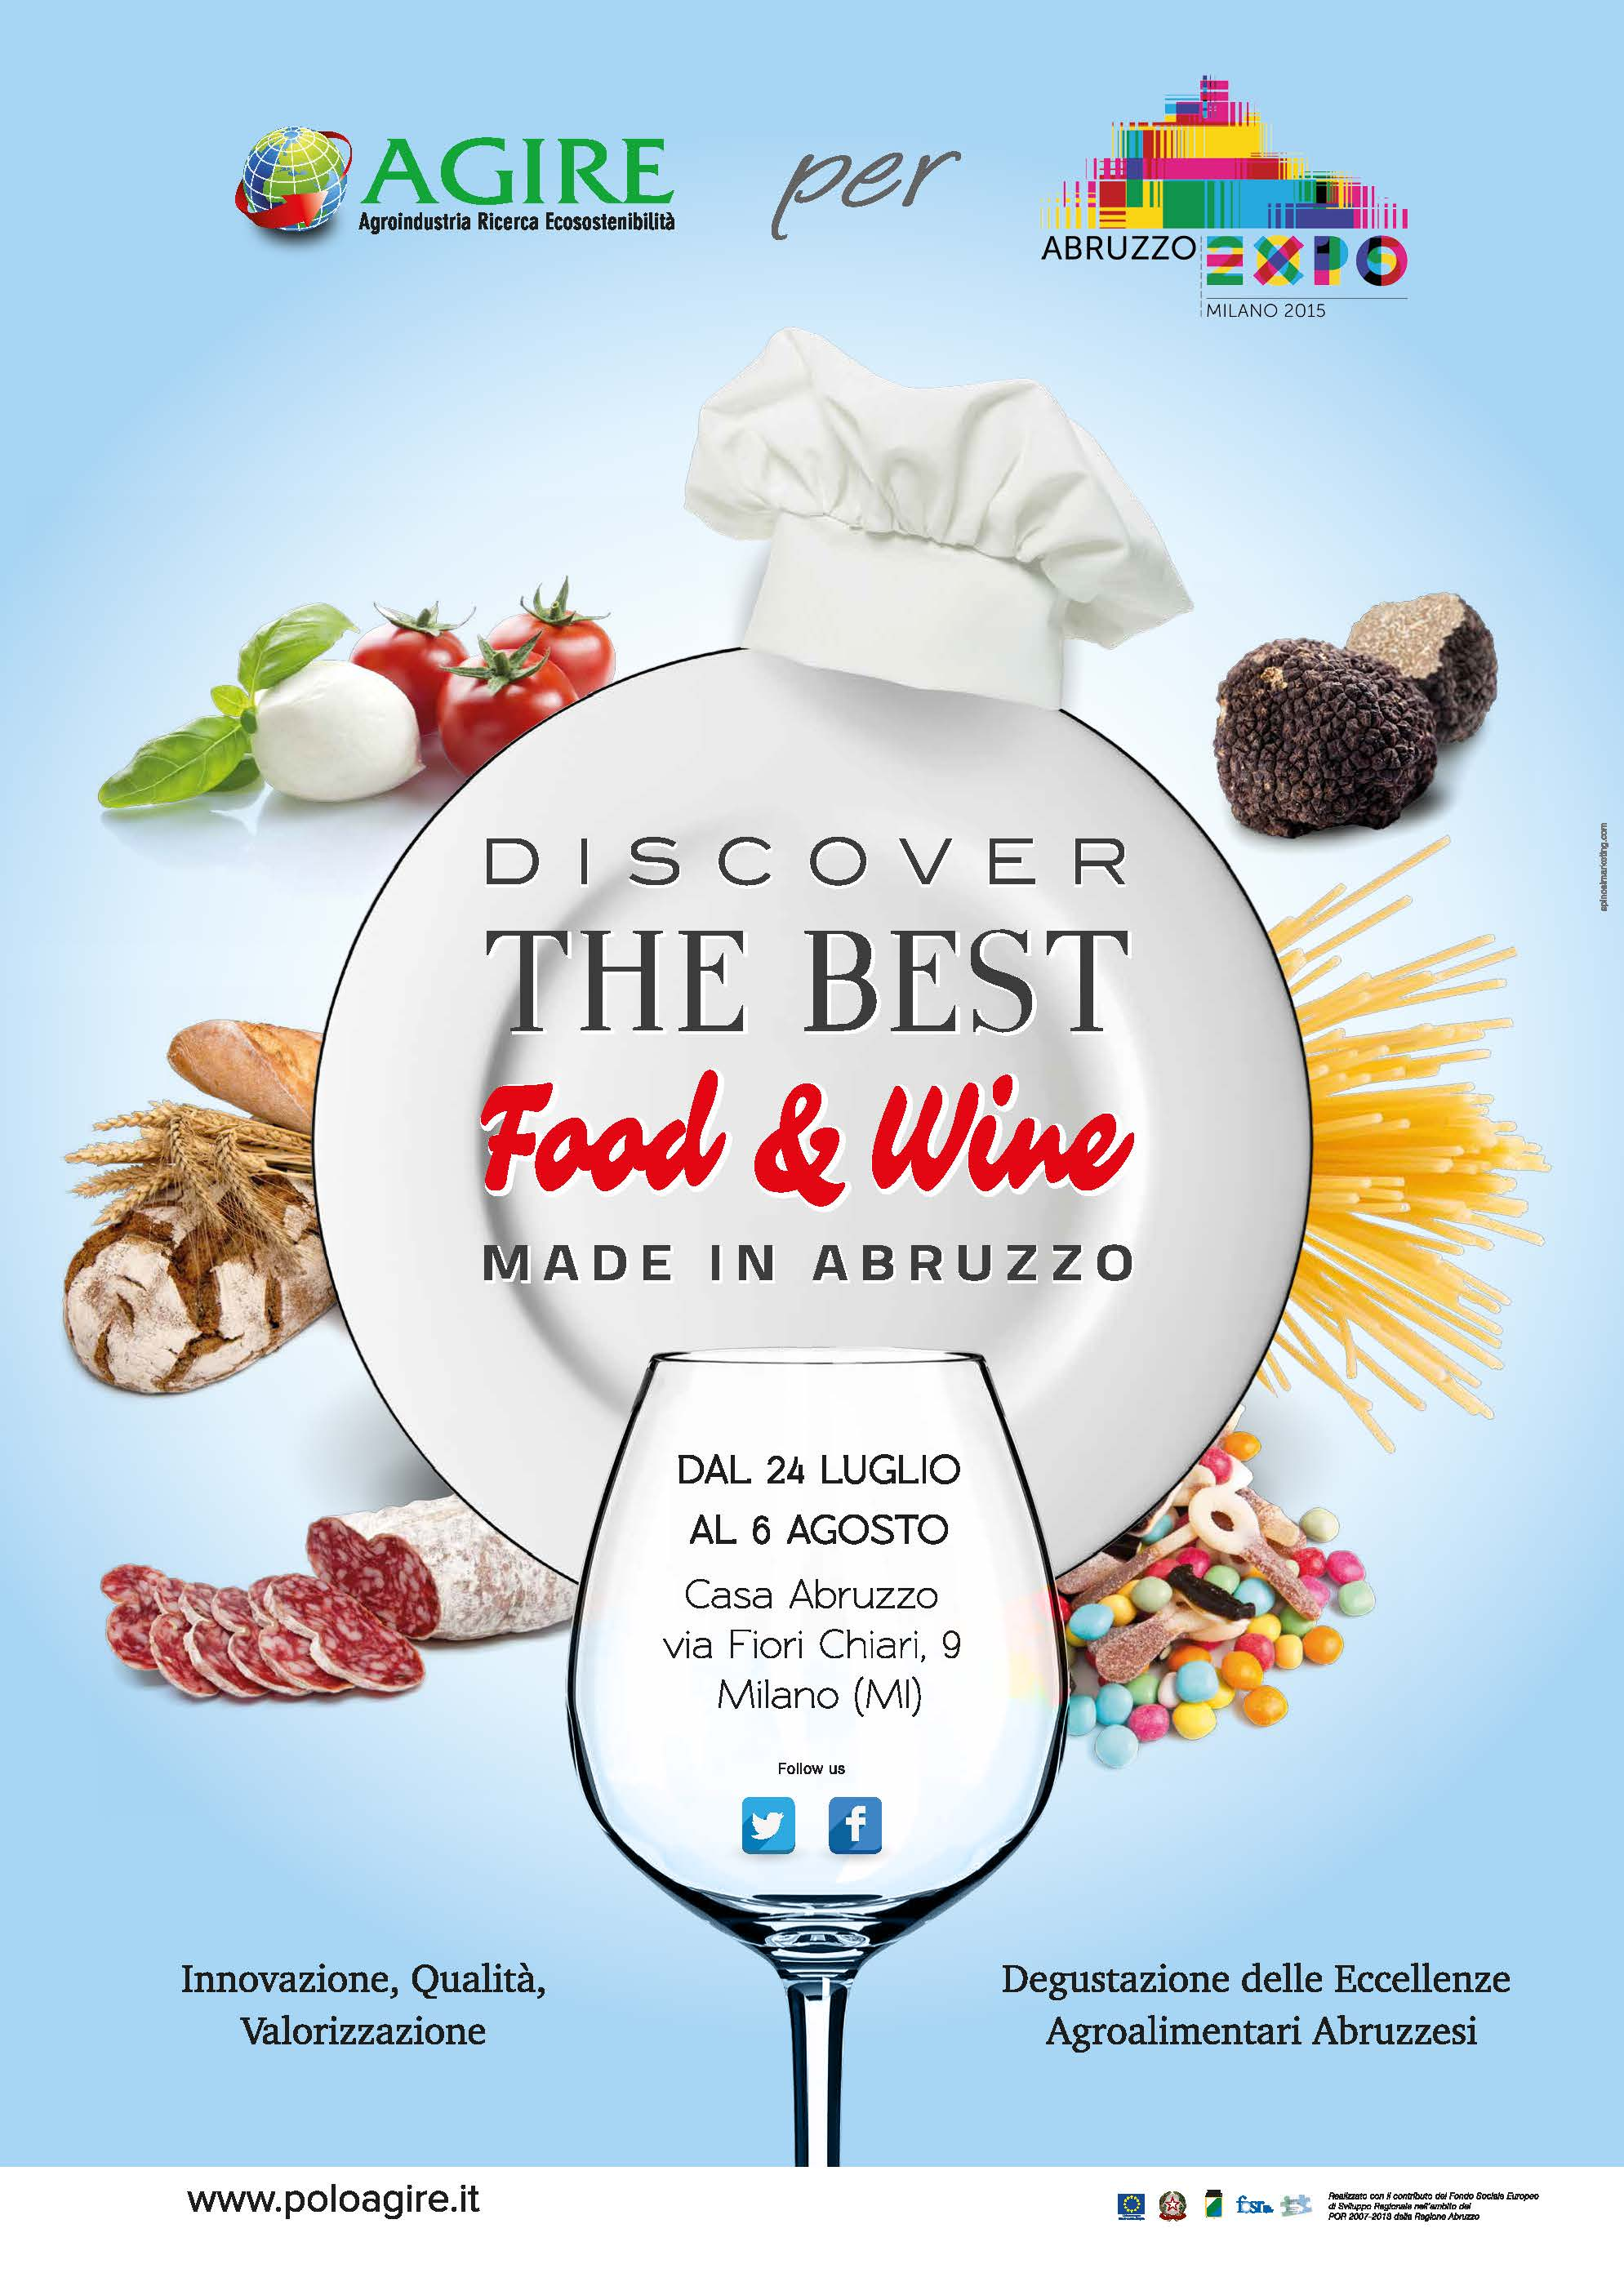 Polo Agire | Abruzzo Expo 2015 | The best food wine Abruzzo